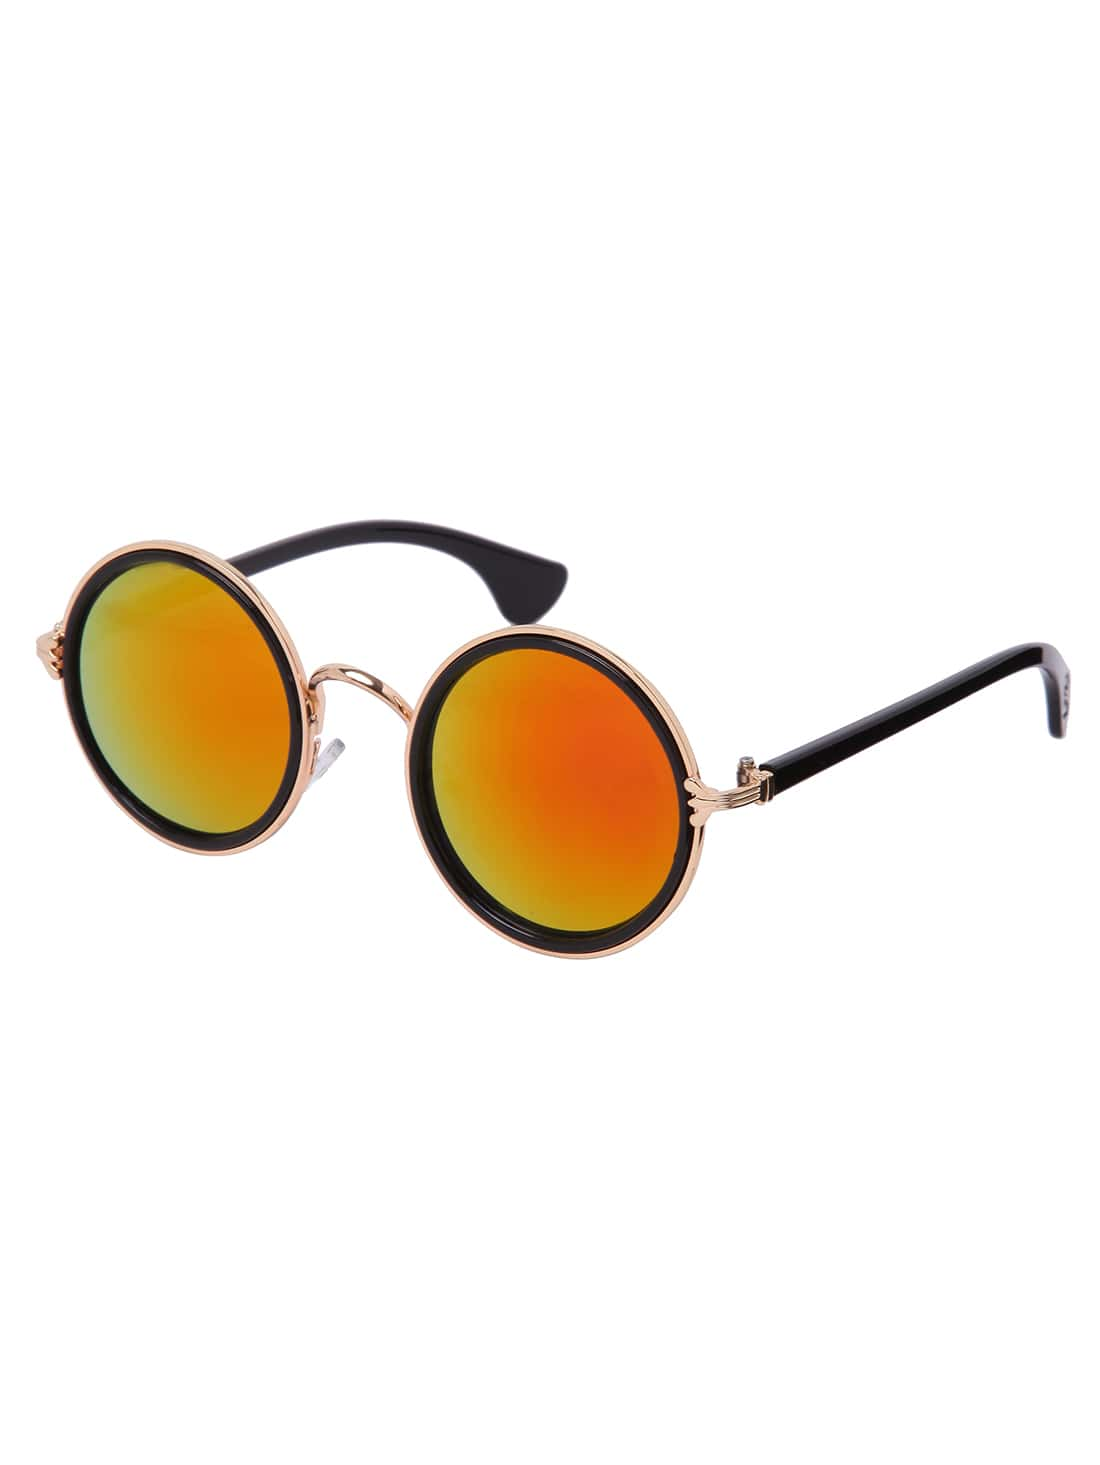 Gold Frame Round Red Lens Retro Style SunglassesGold Frame Round Red Lens Retro Style Sunglasses<br><br>color: Red<br>size: None